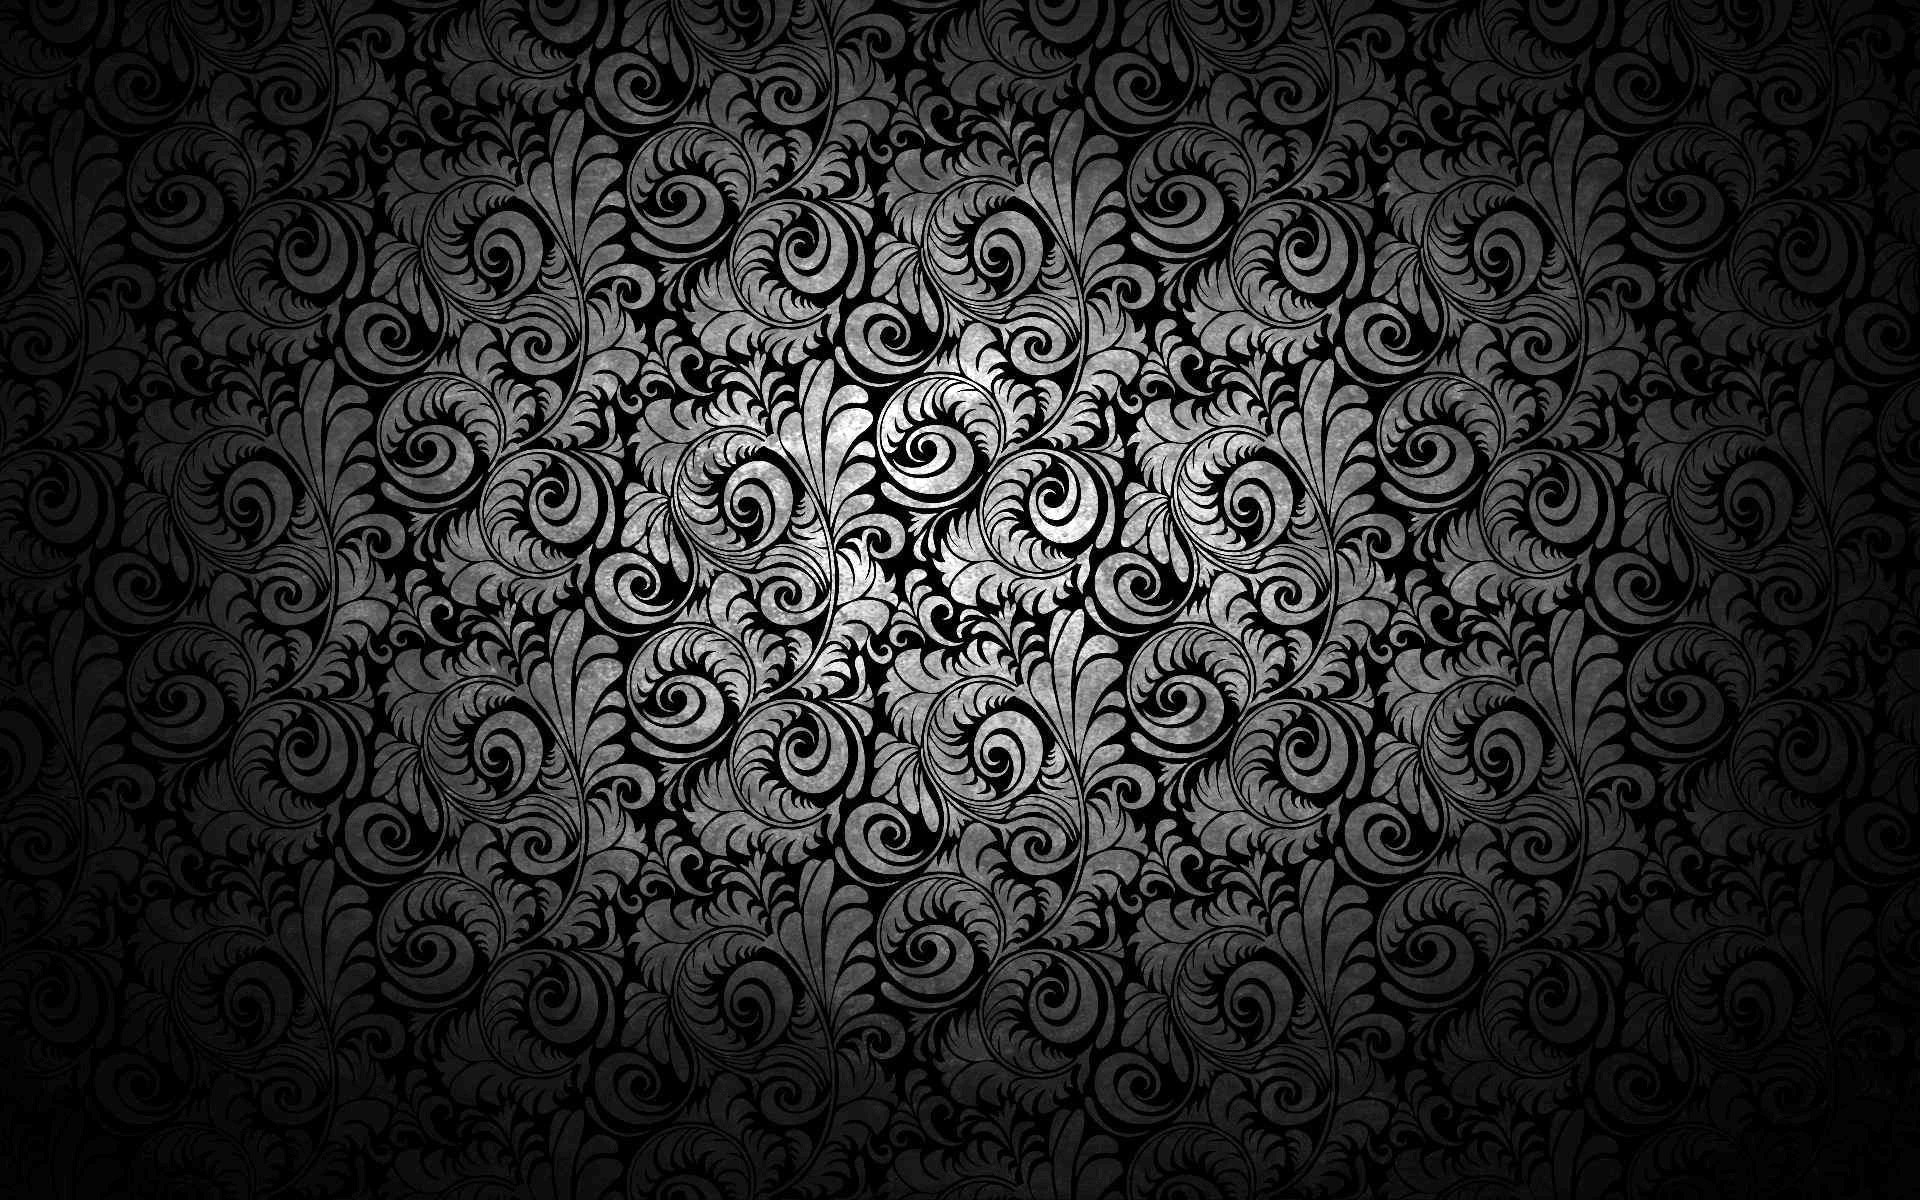 Collection of Hd Abstract Wallpaper Widescreen on HDWallpapers 1920x1200